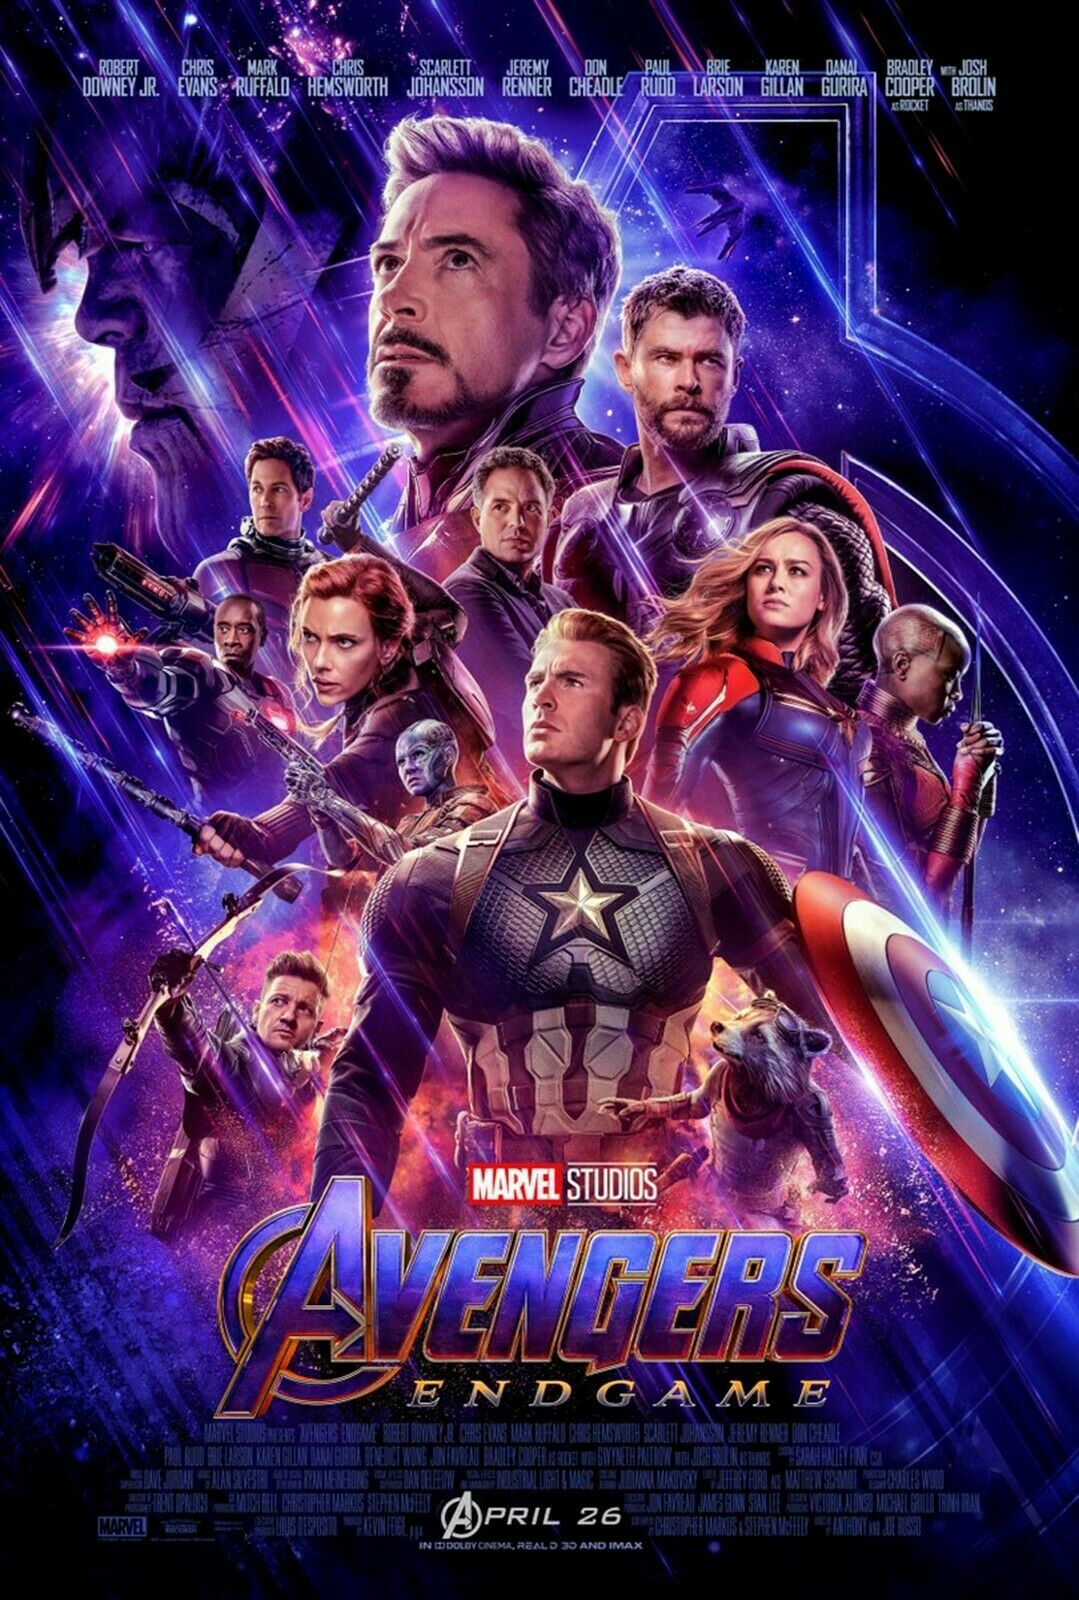 Avengers: Endgame Movie Poster - Iron Man, Captain Marvel, T